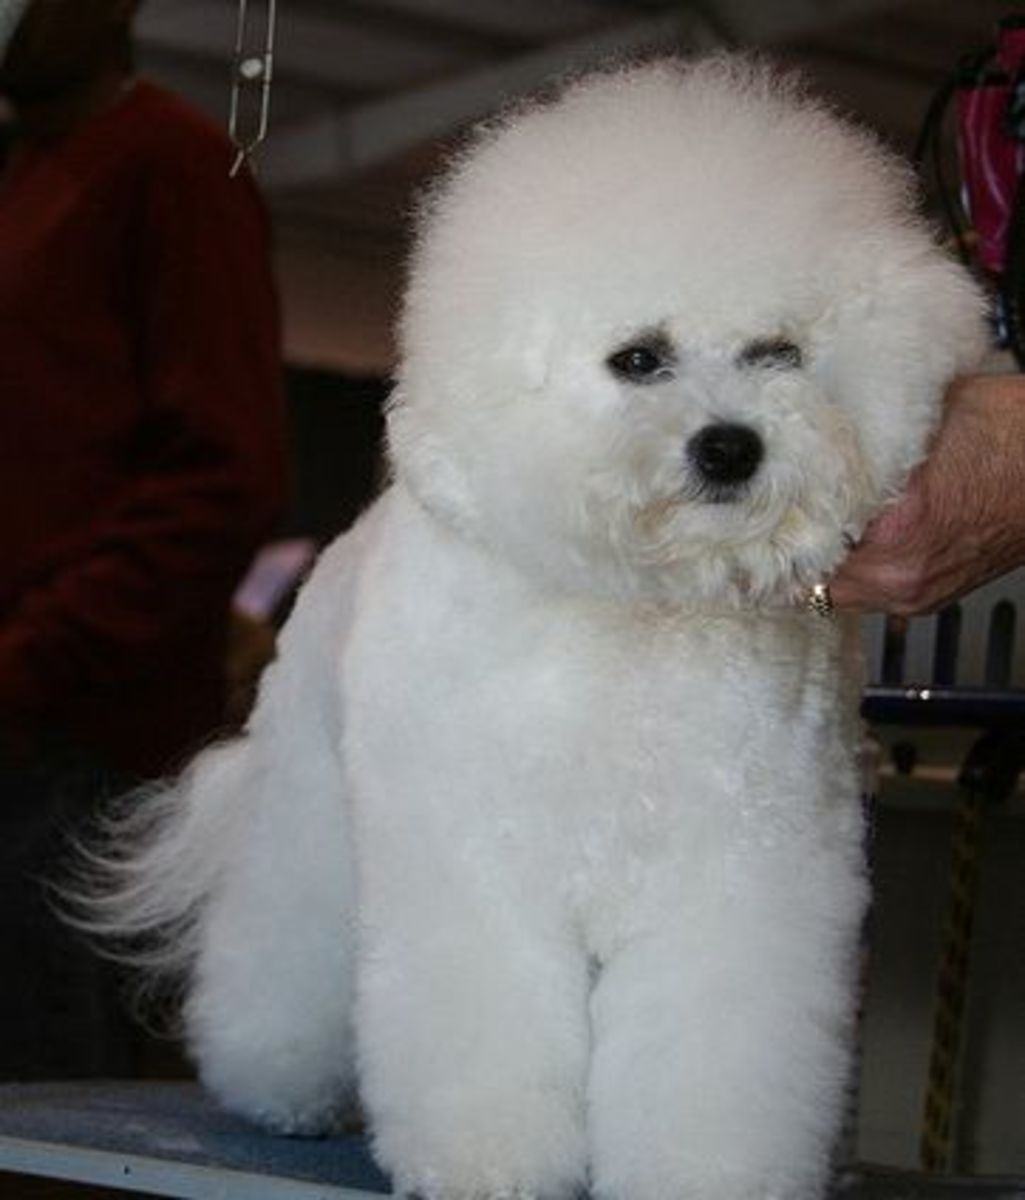 Like all dogs that don't shed, Bichon need to be groomed.